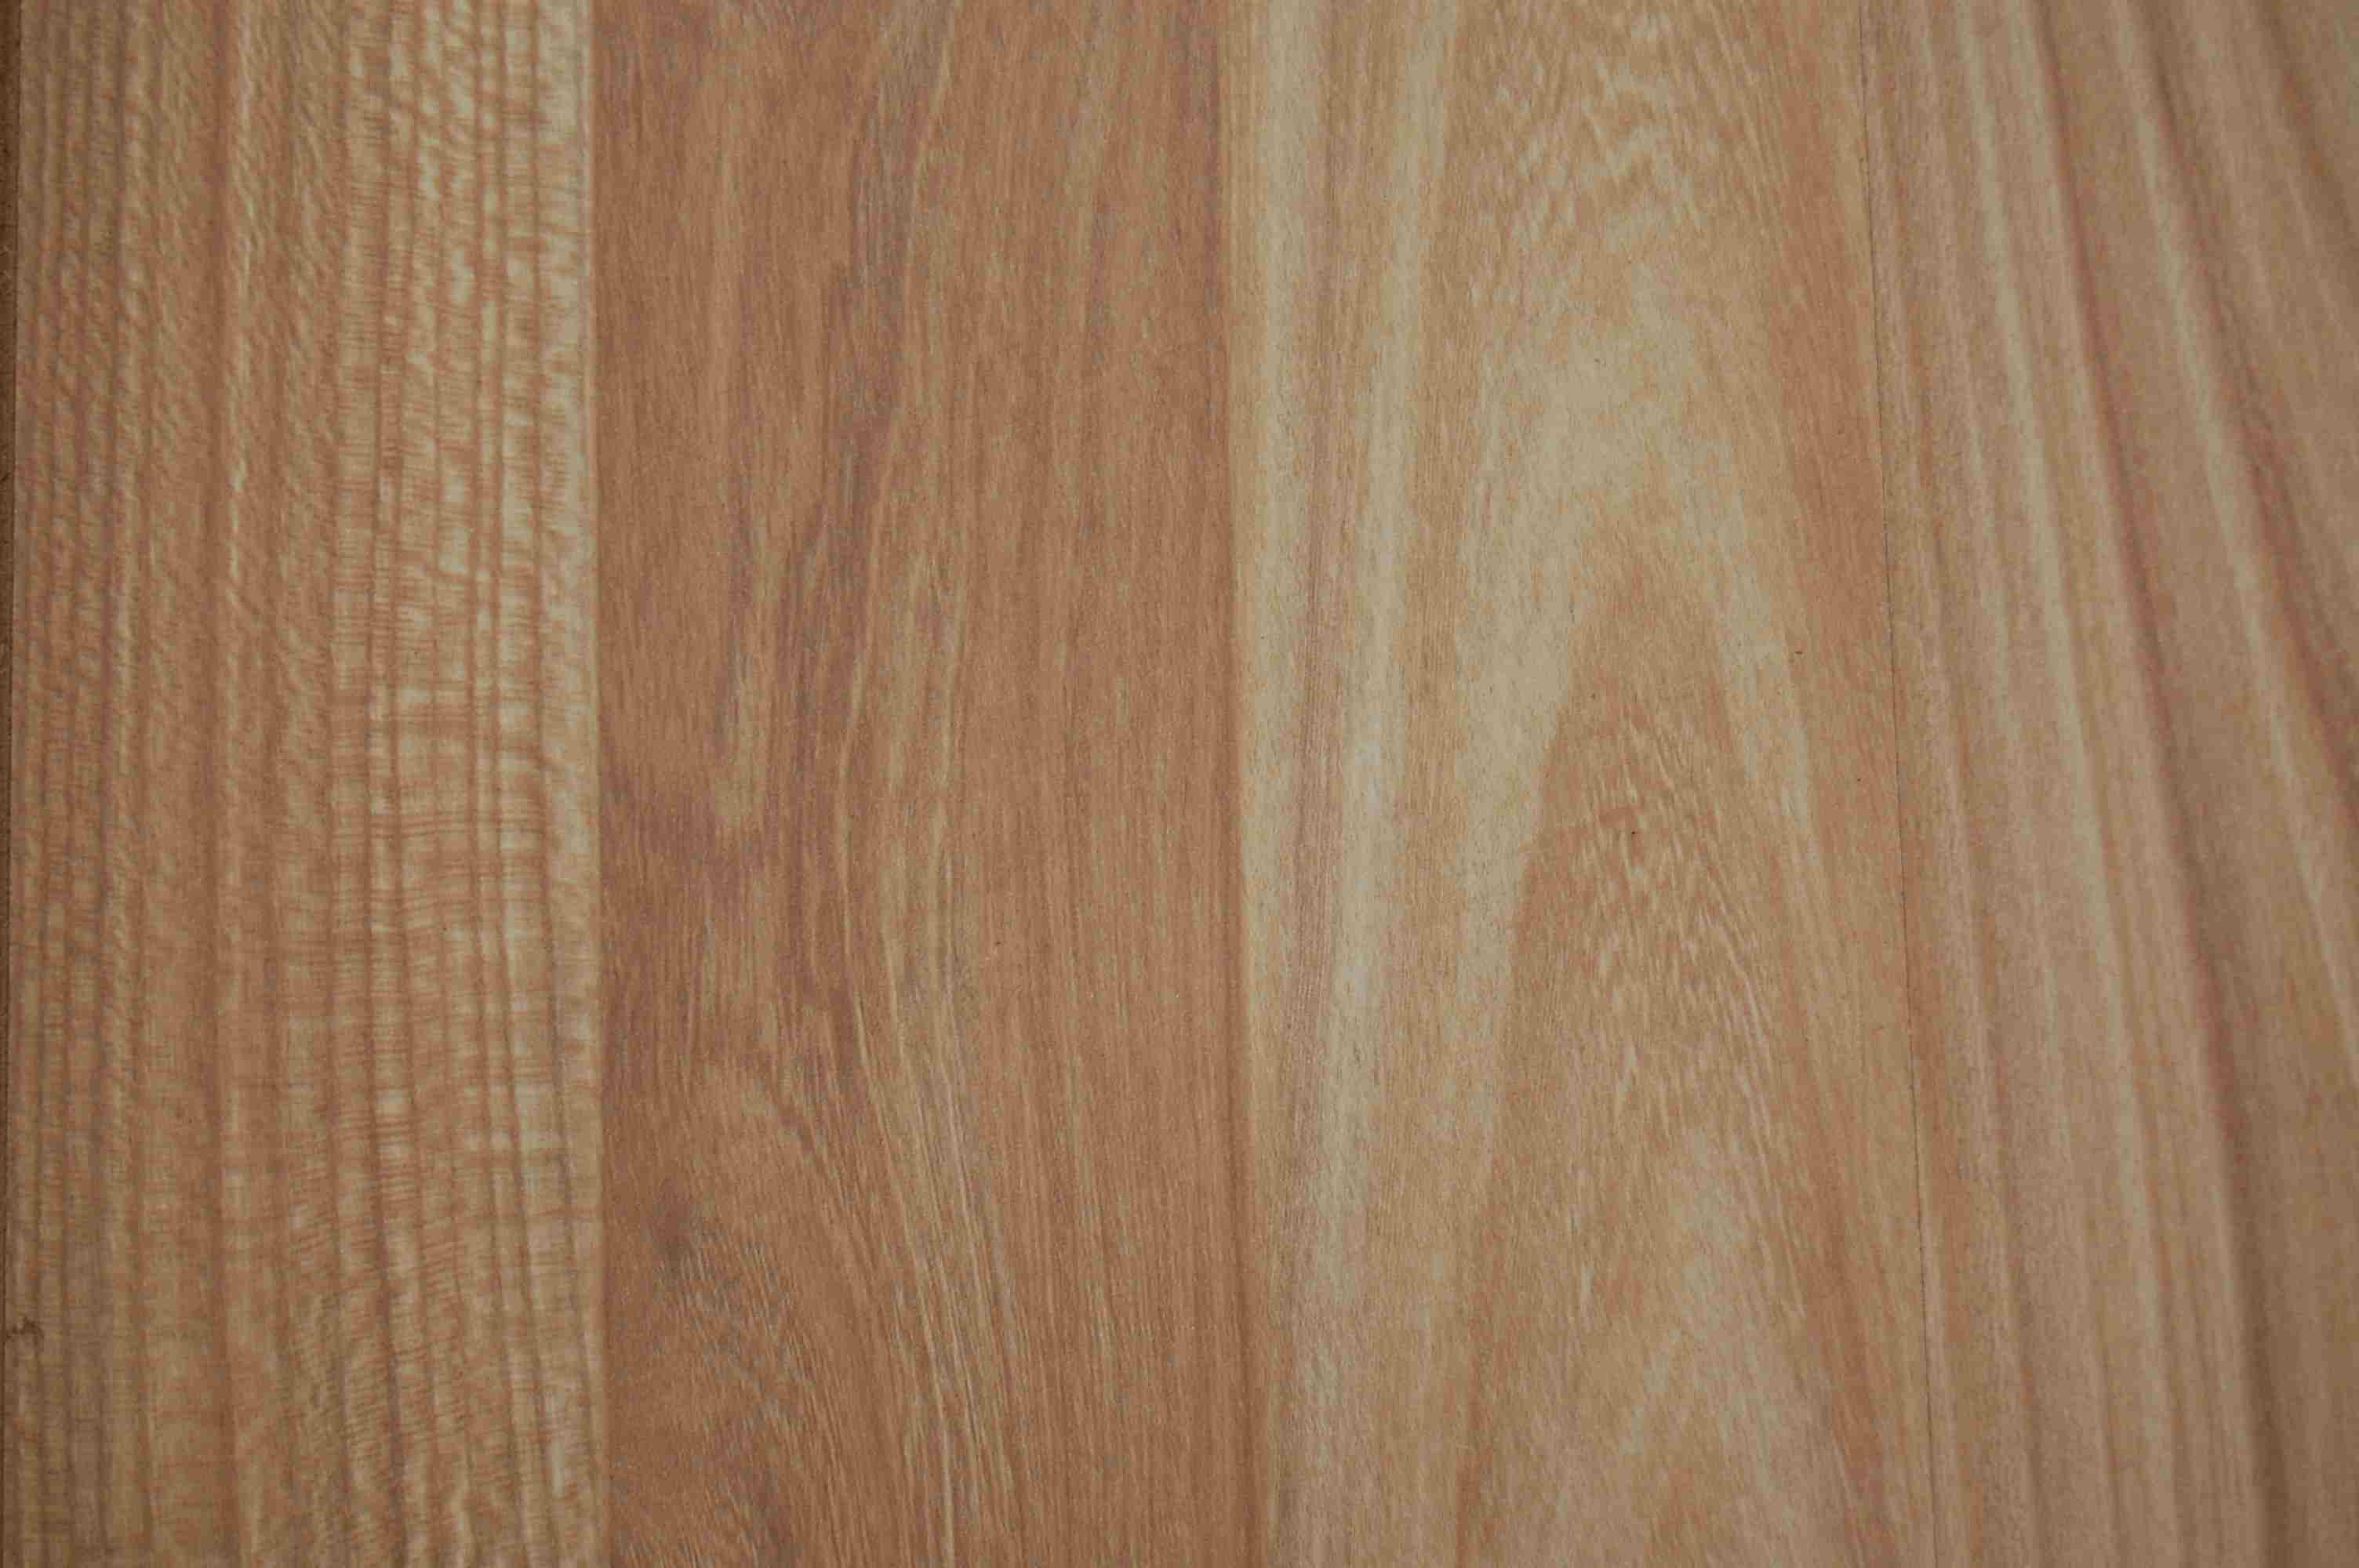 laminate flooring wood flooring laminate flooring